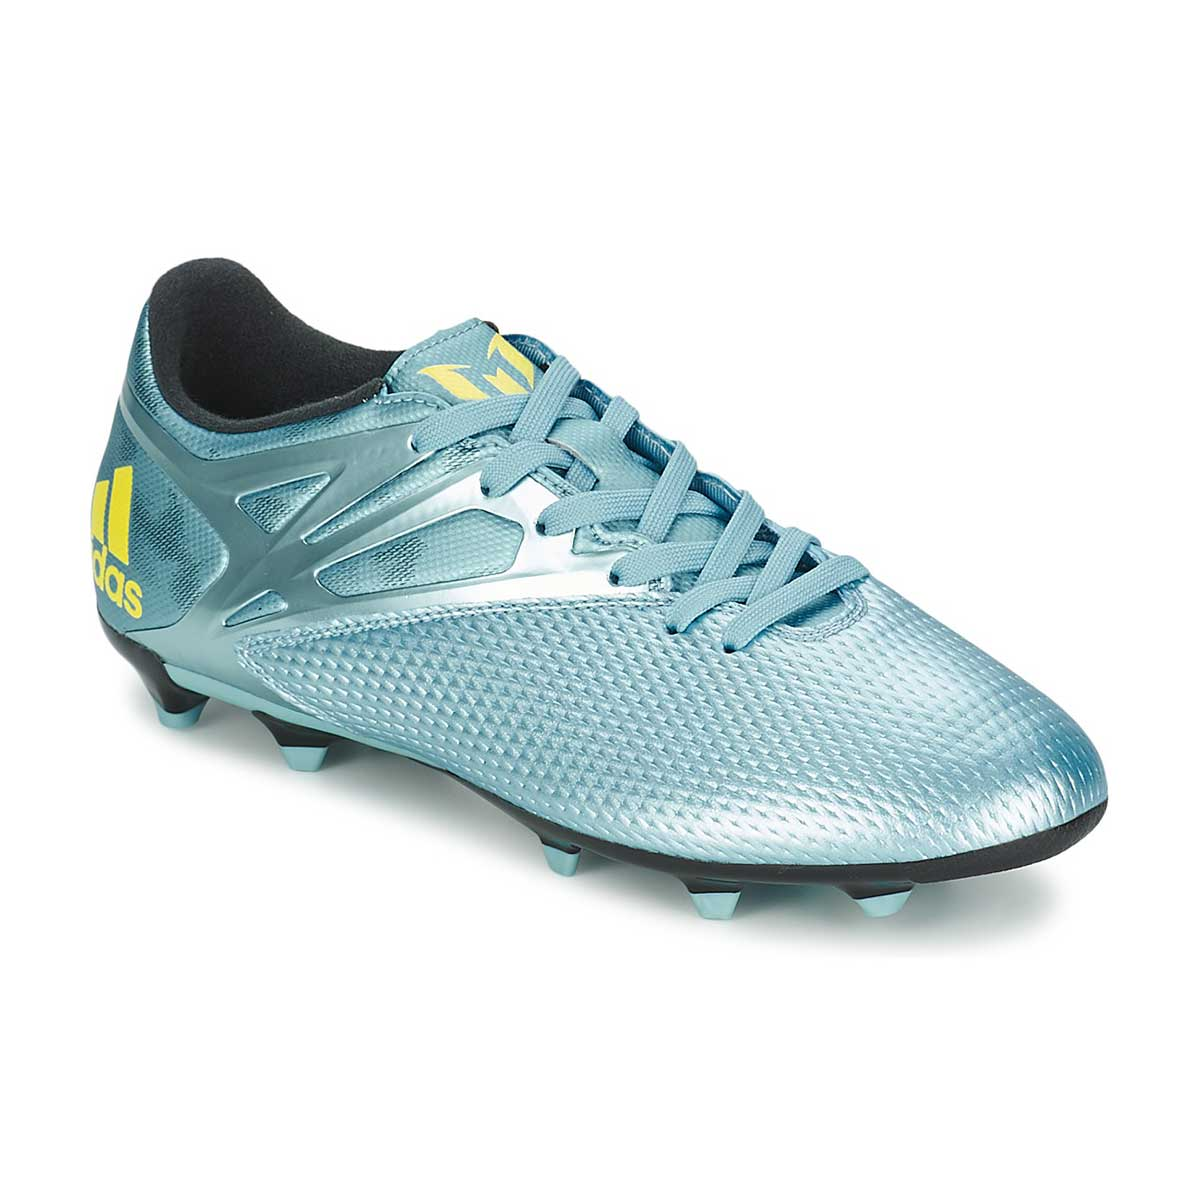 f1234377bf Buy Adidas Messi 15.3 FG AG Football Shoes Online in India